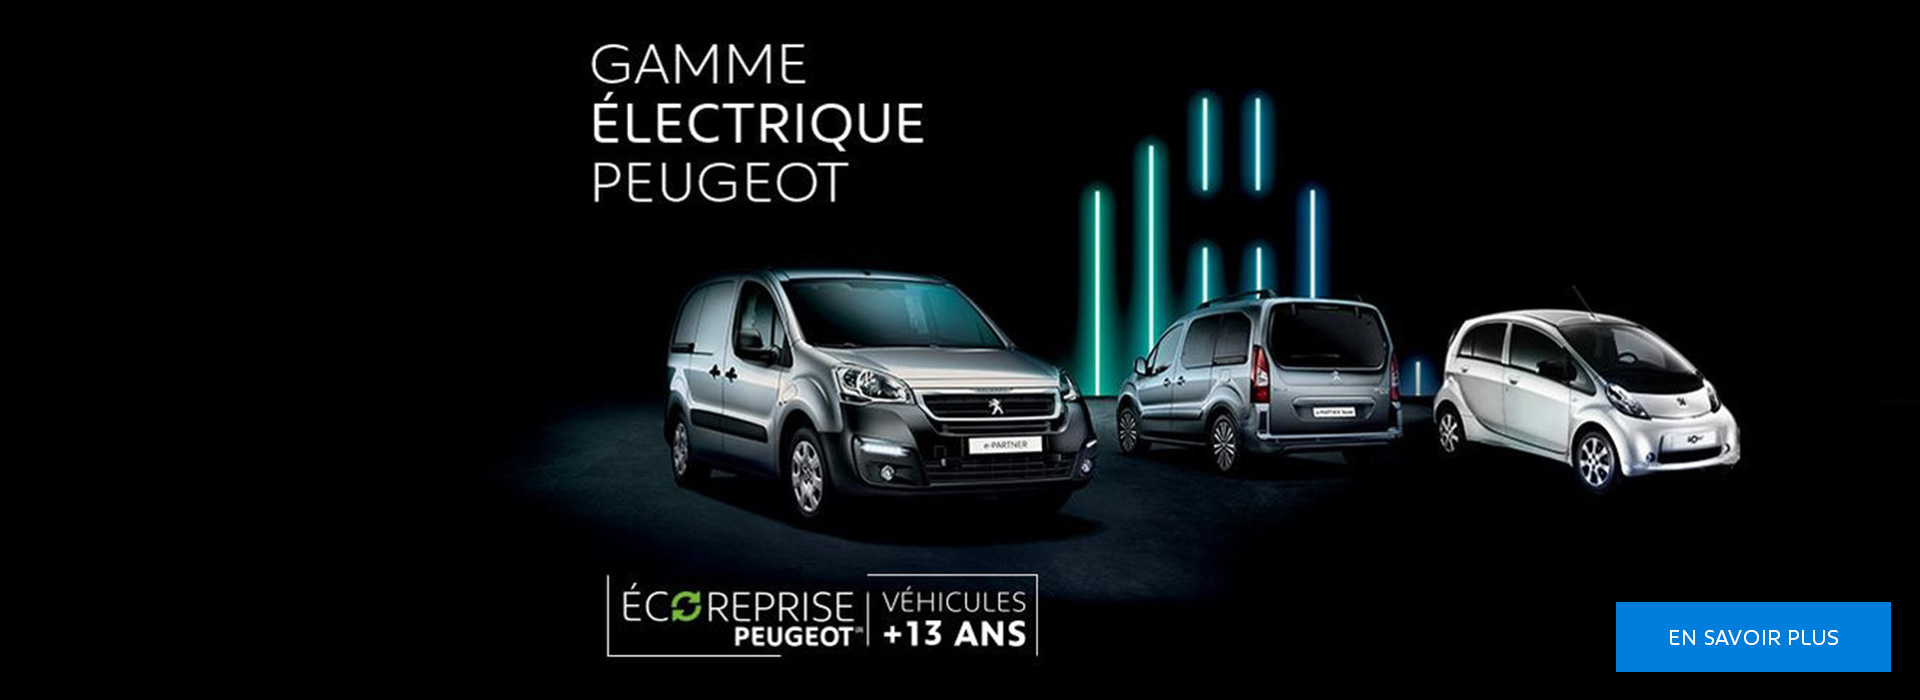 peugeot reims vente de voiture neuve et v hicule d 39 occasion. Black Bedroom Furniture Sets. Home Design Ideas